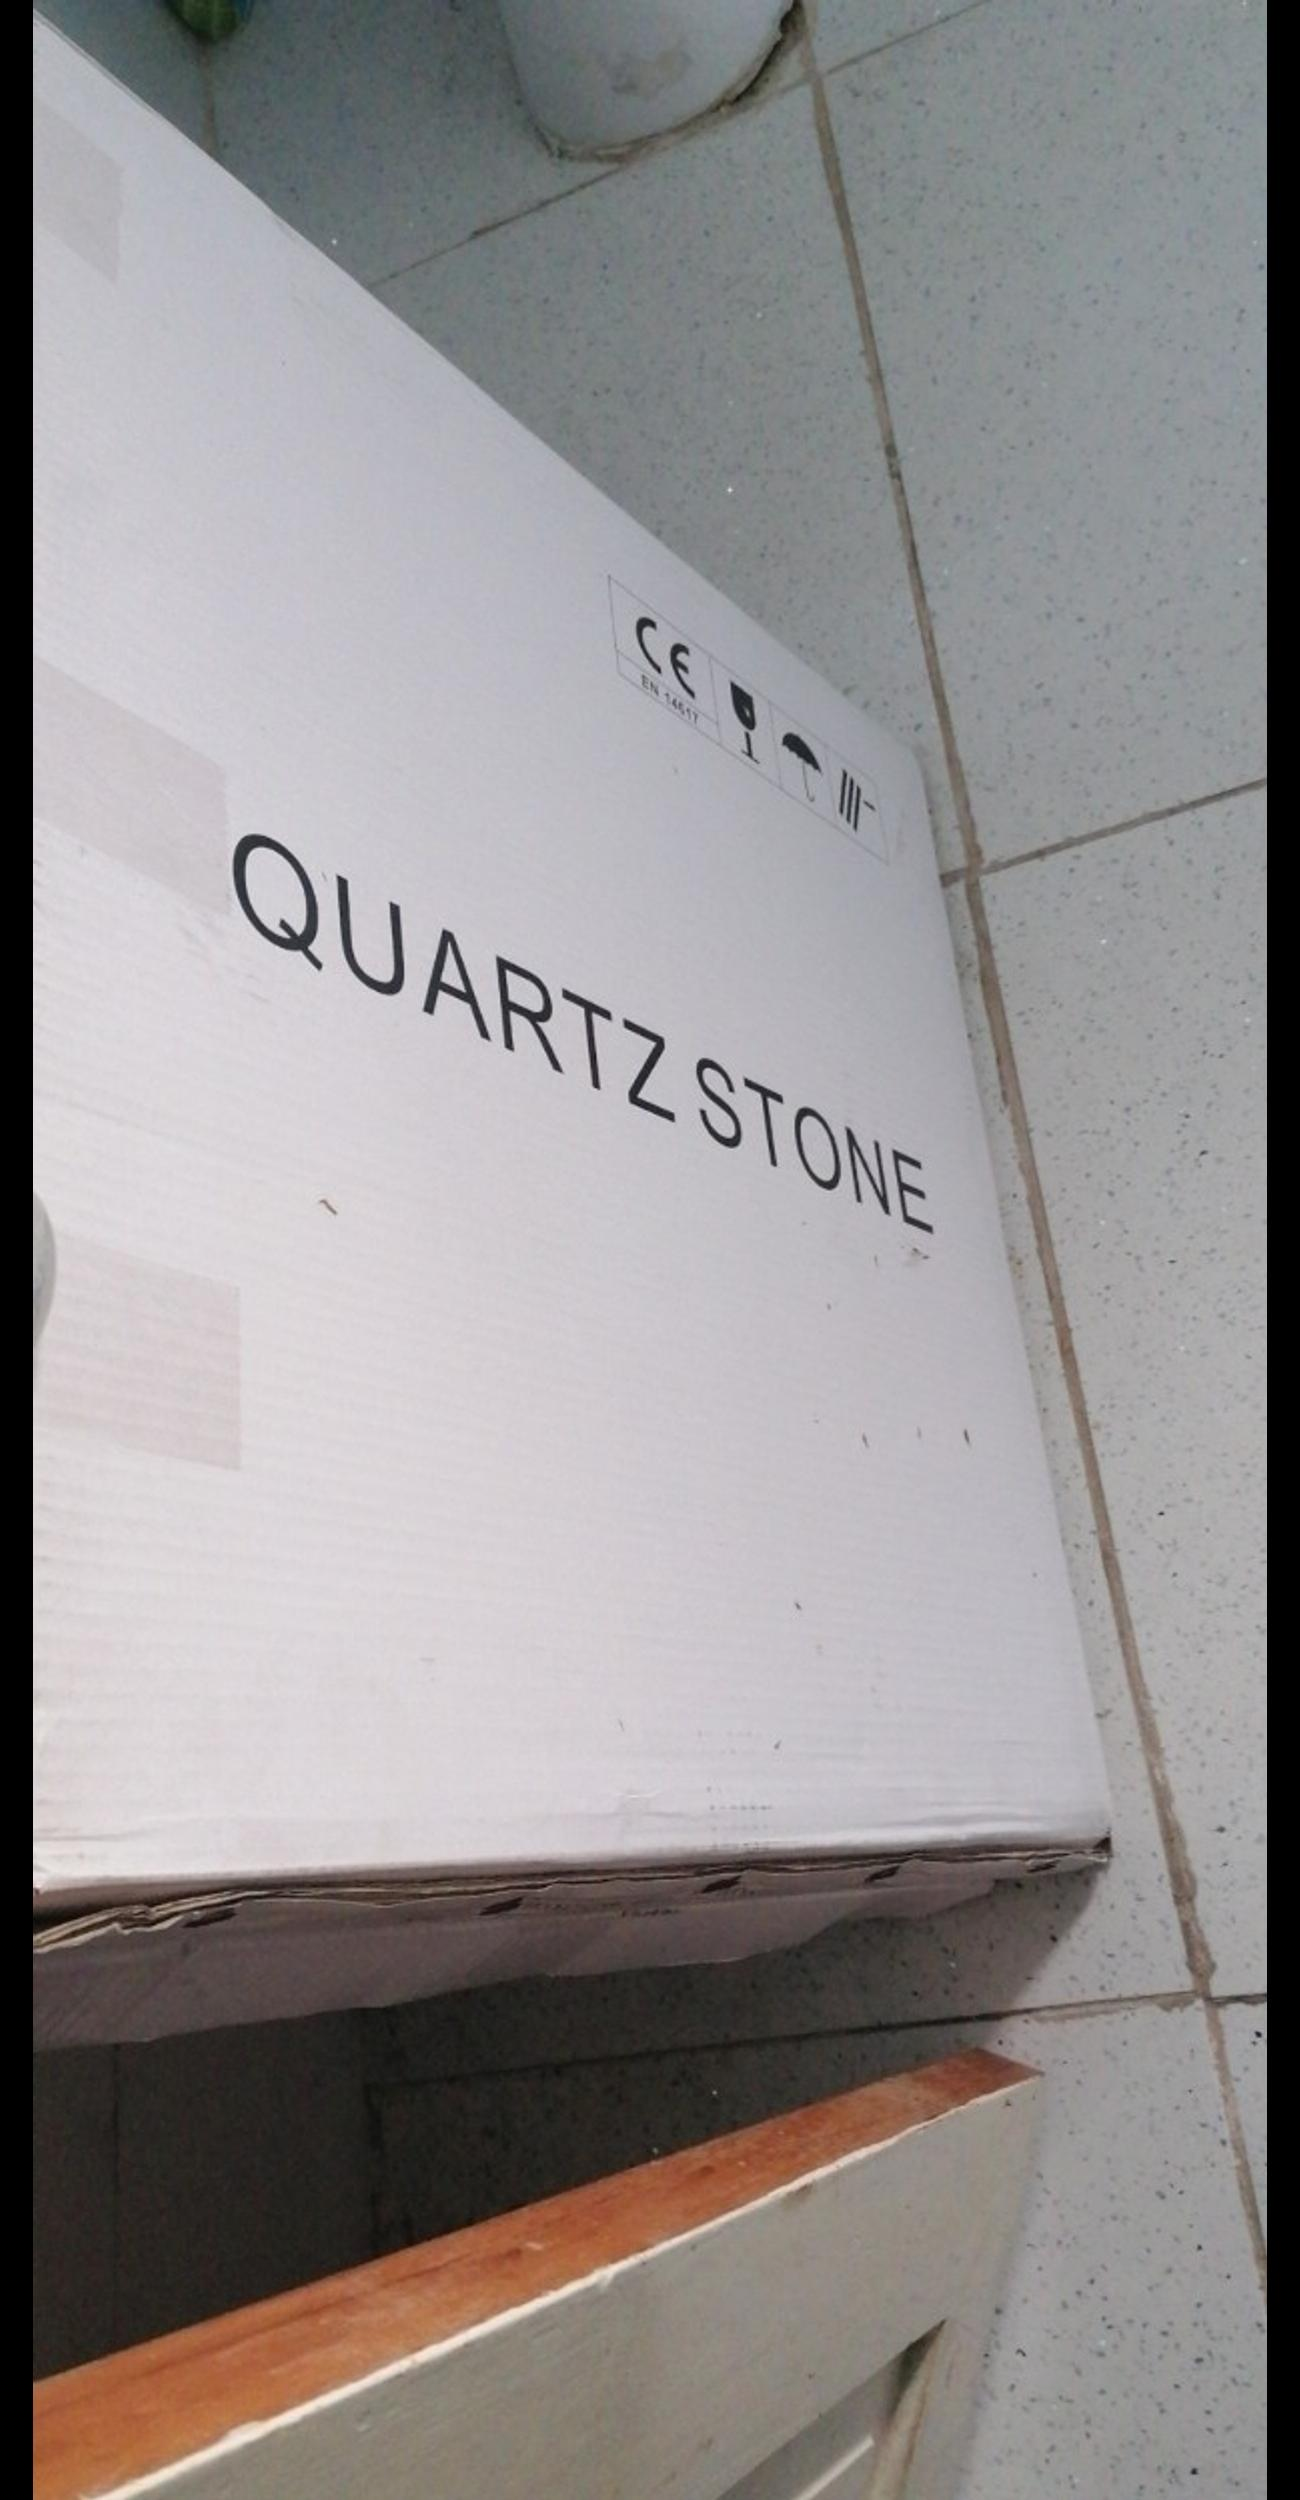 4 large tiles quartz tiles measurements on pic retails at 22 a tile wud do a small space or use them on worktops etc xx